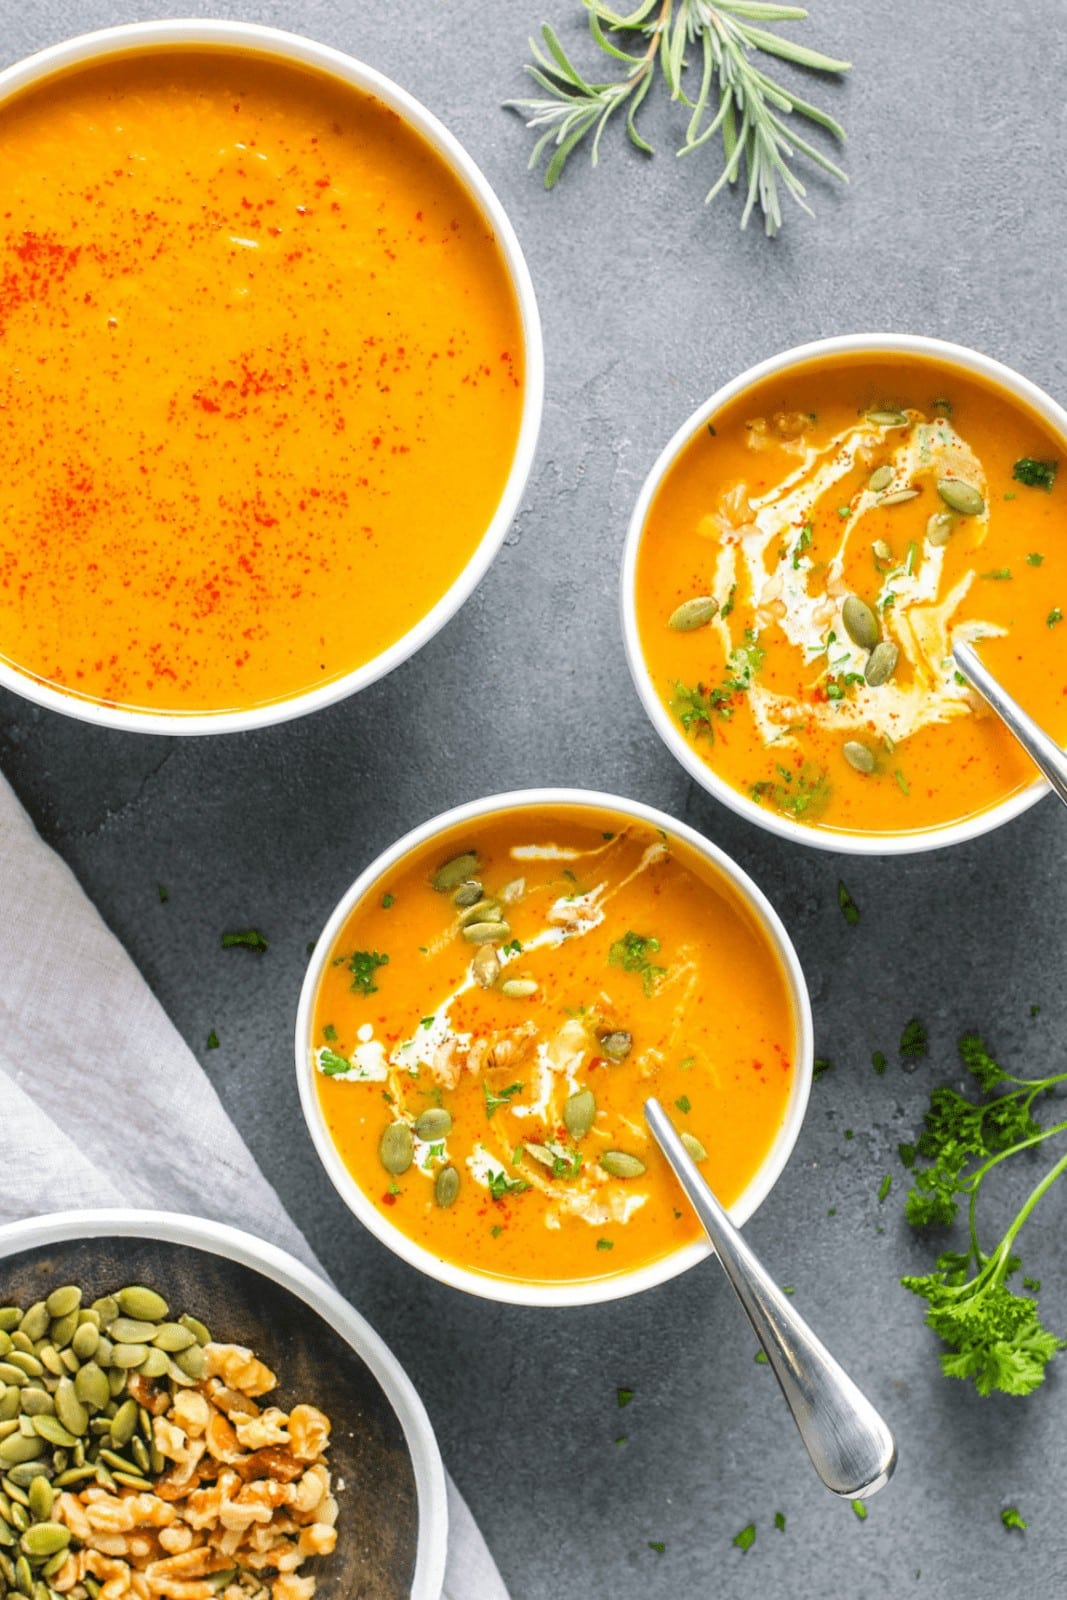 3 bowls of orange colored squash soup with cream and green garnish on grey background